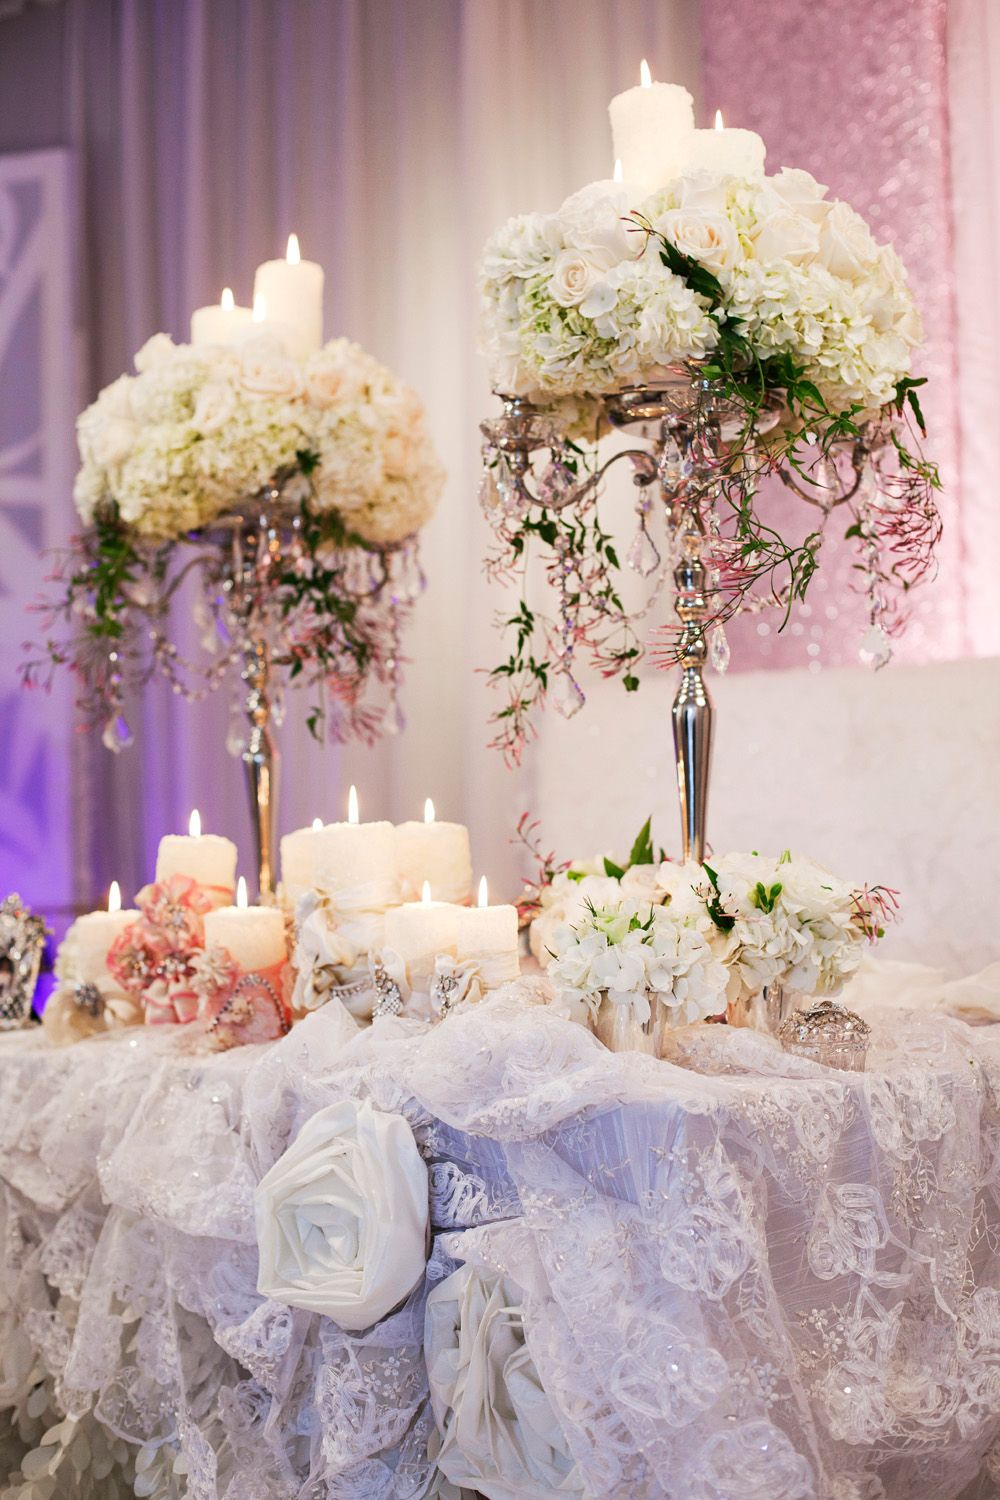 37 Elegant Floral Centerpieces For Wedding Table